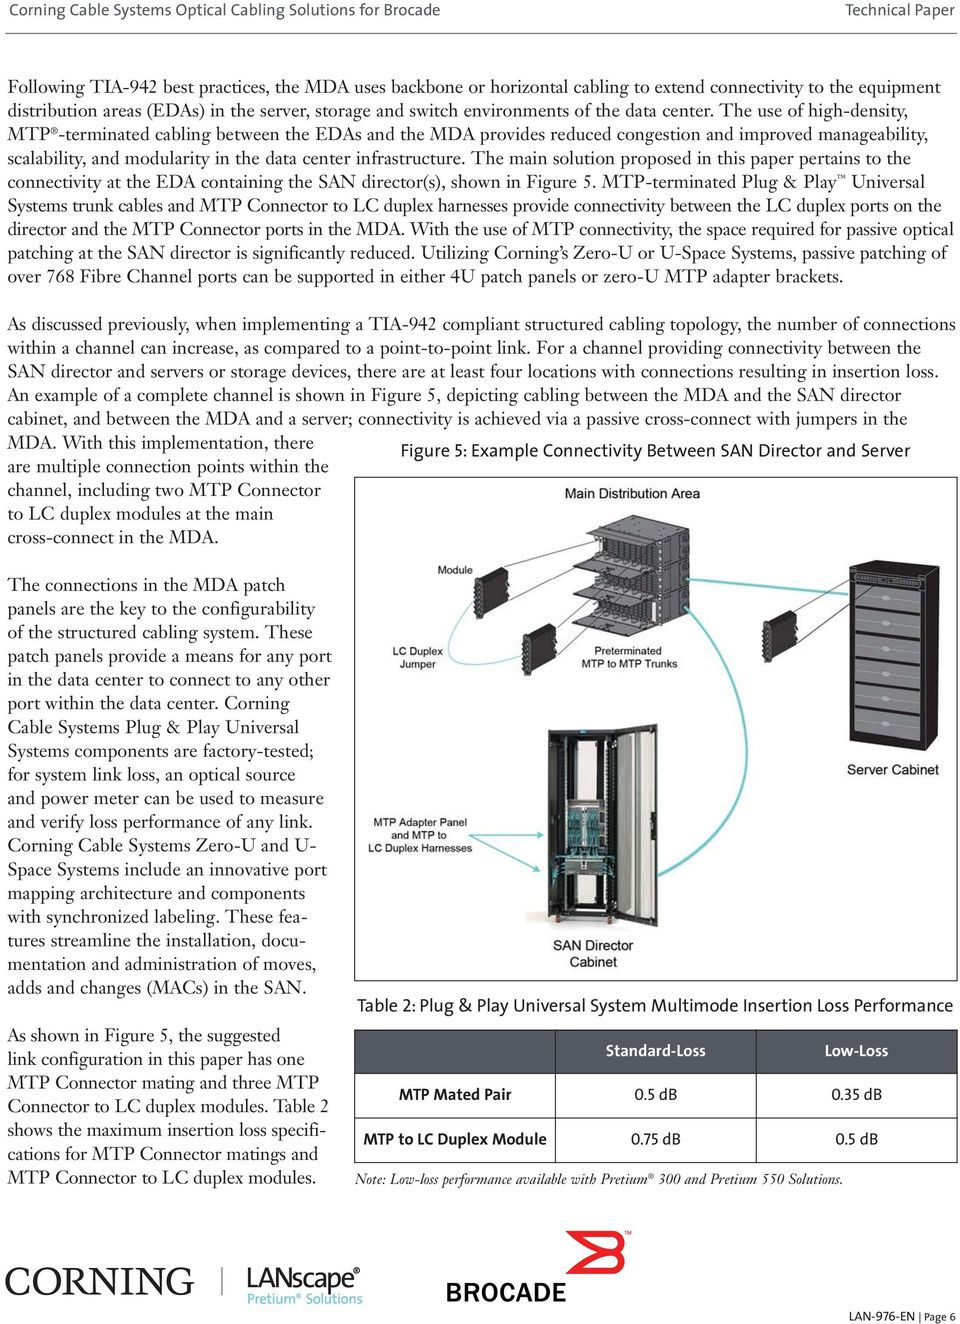 The use of high-density, MTP -terminated cabling between the EDAs and the MDA provides reduced congestion and improved manageability, scalability, and modularity in the data center infrastructure.